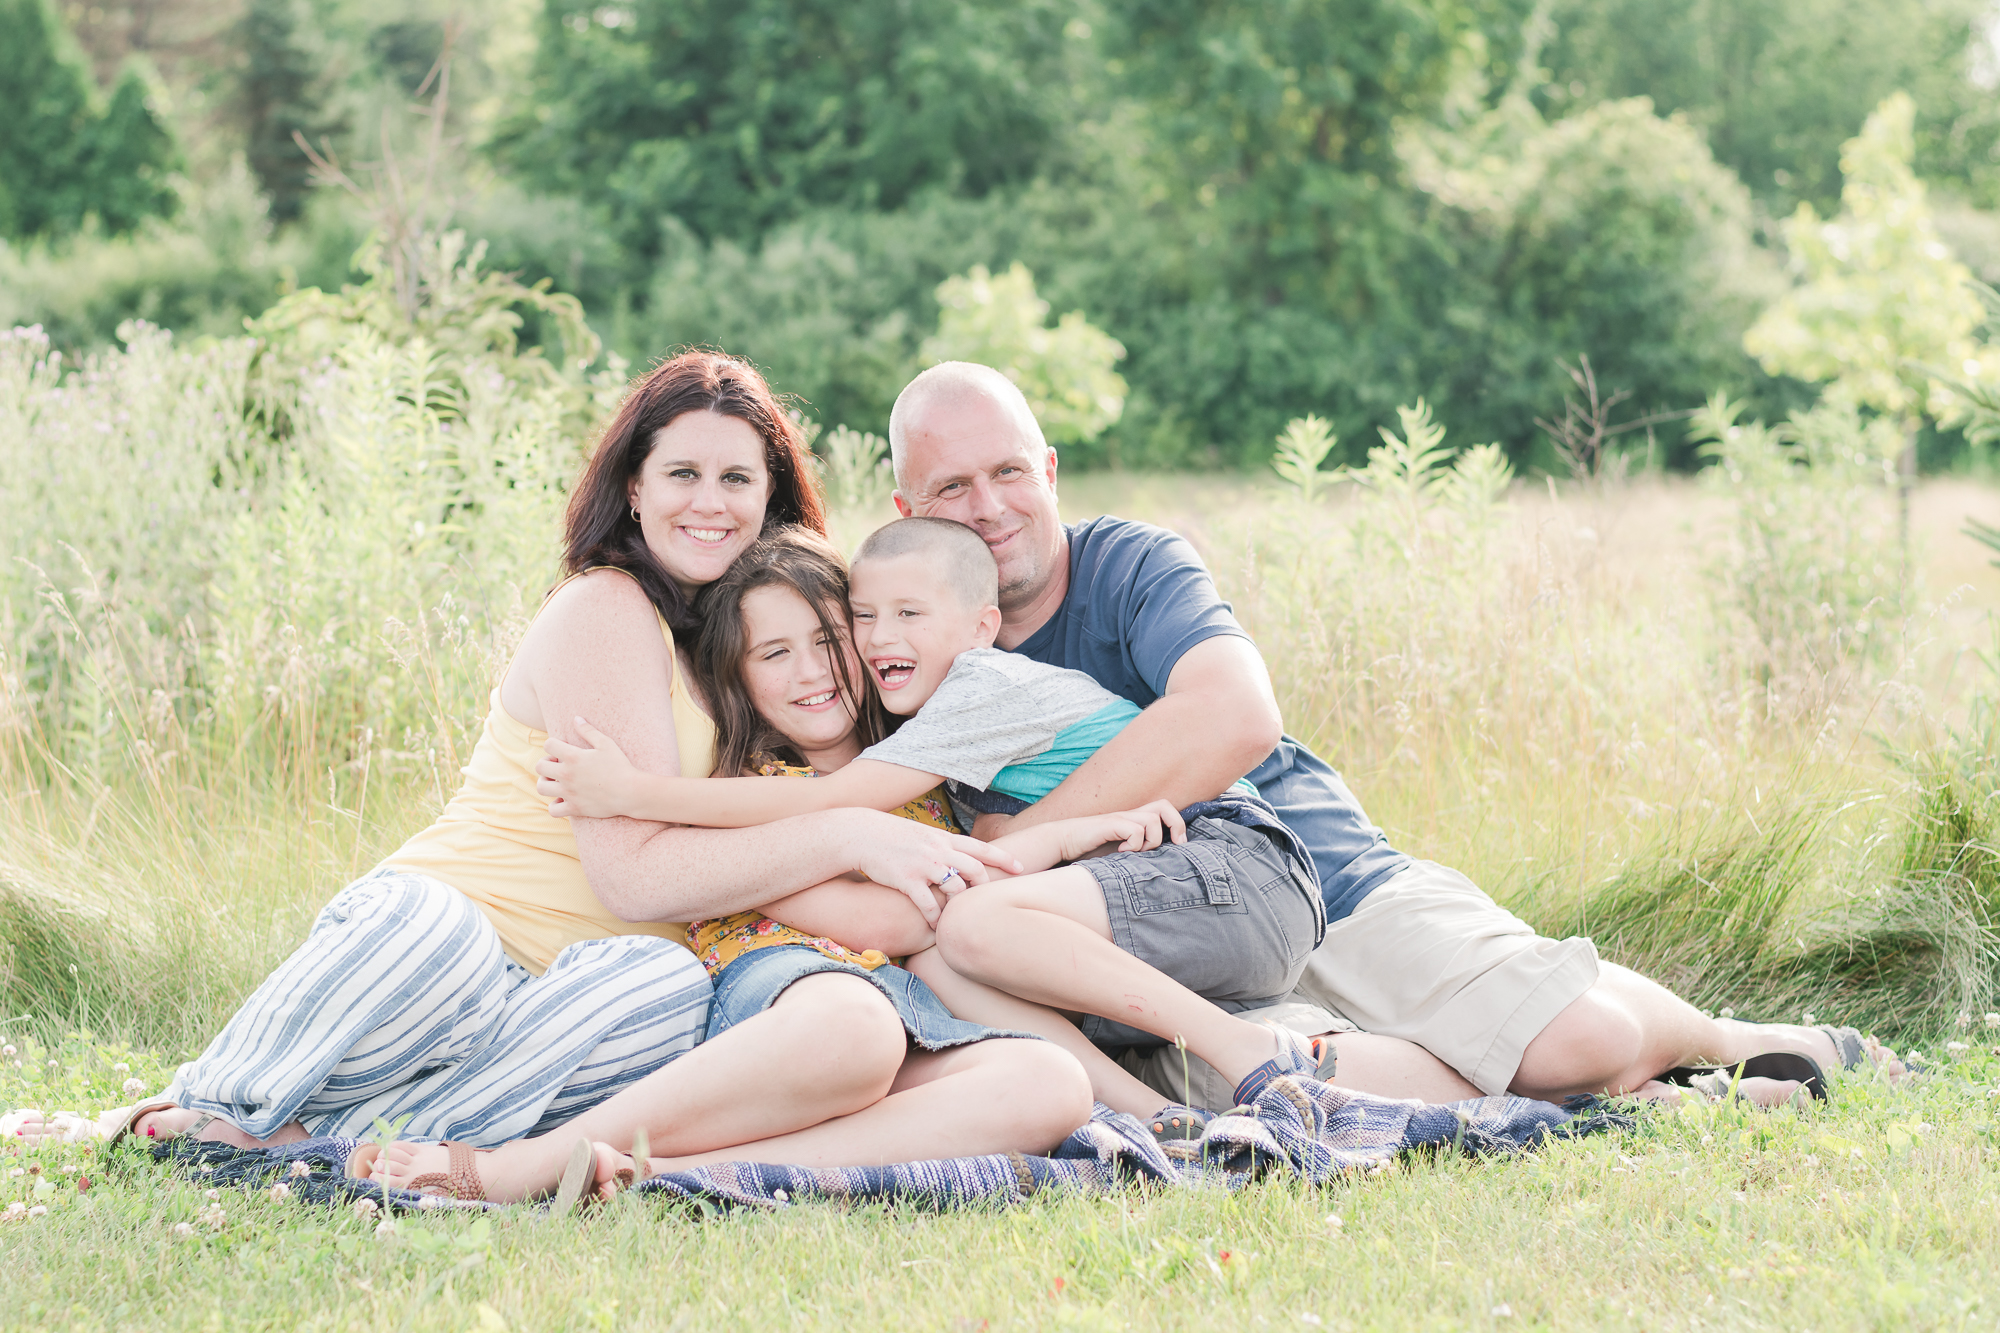 Summer_B Family Portraits Session_Mugrage Park_Medina_Ohio-40.jpg